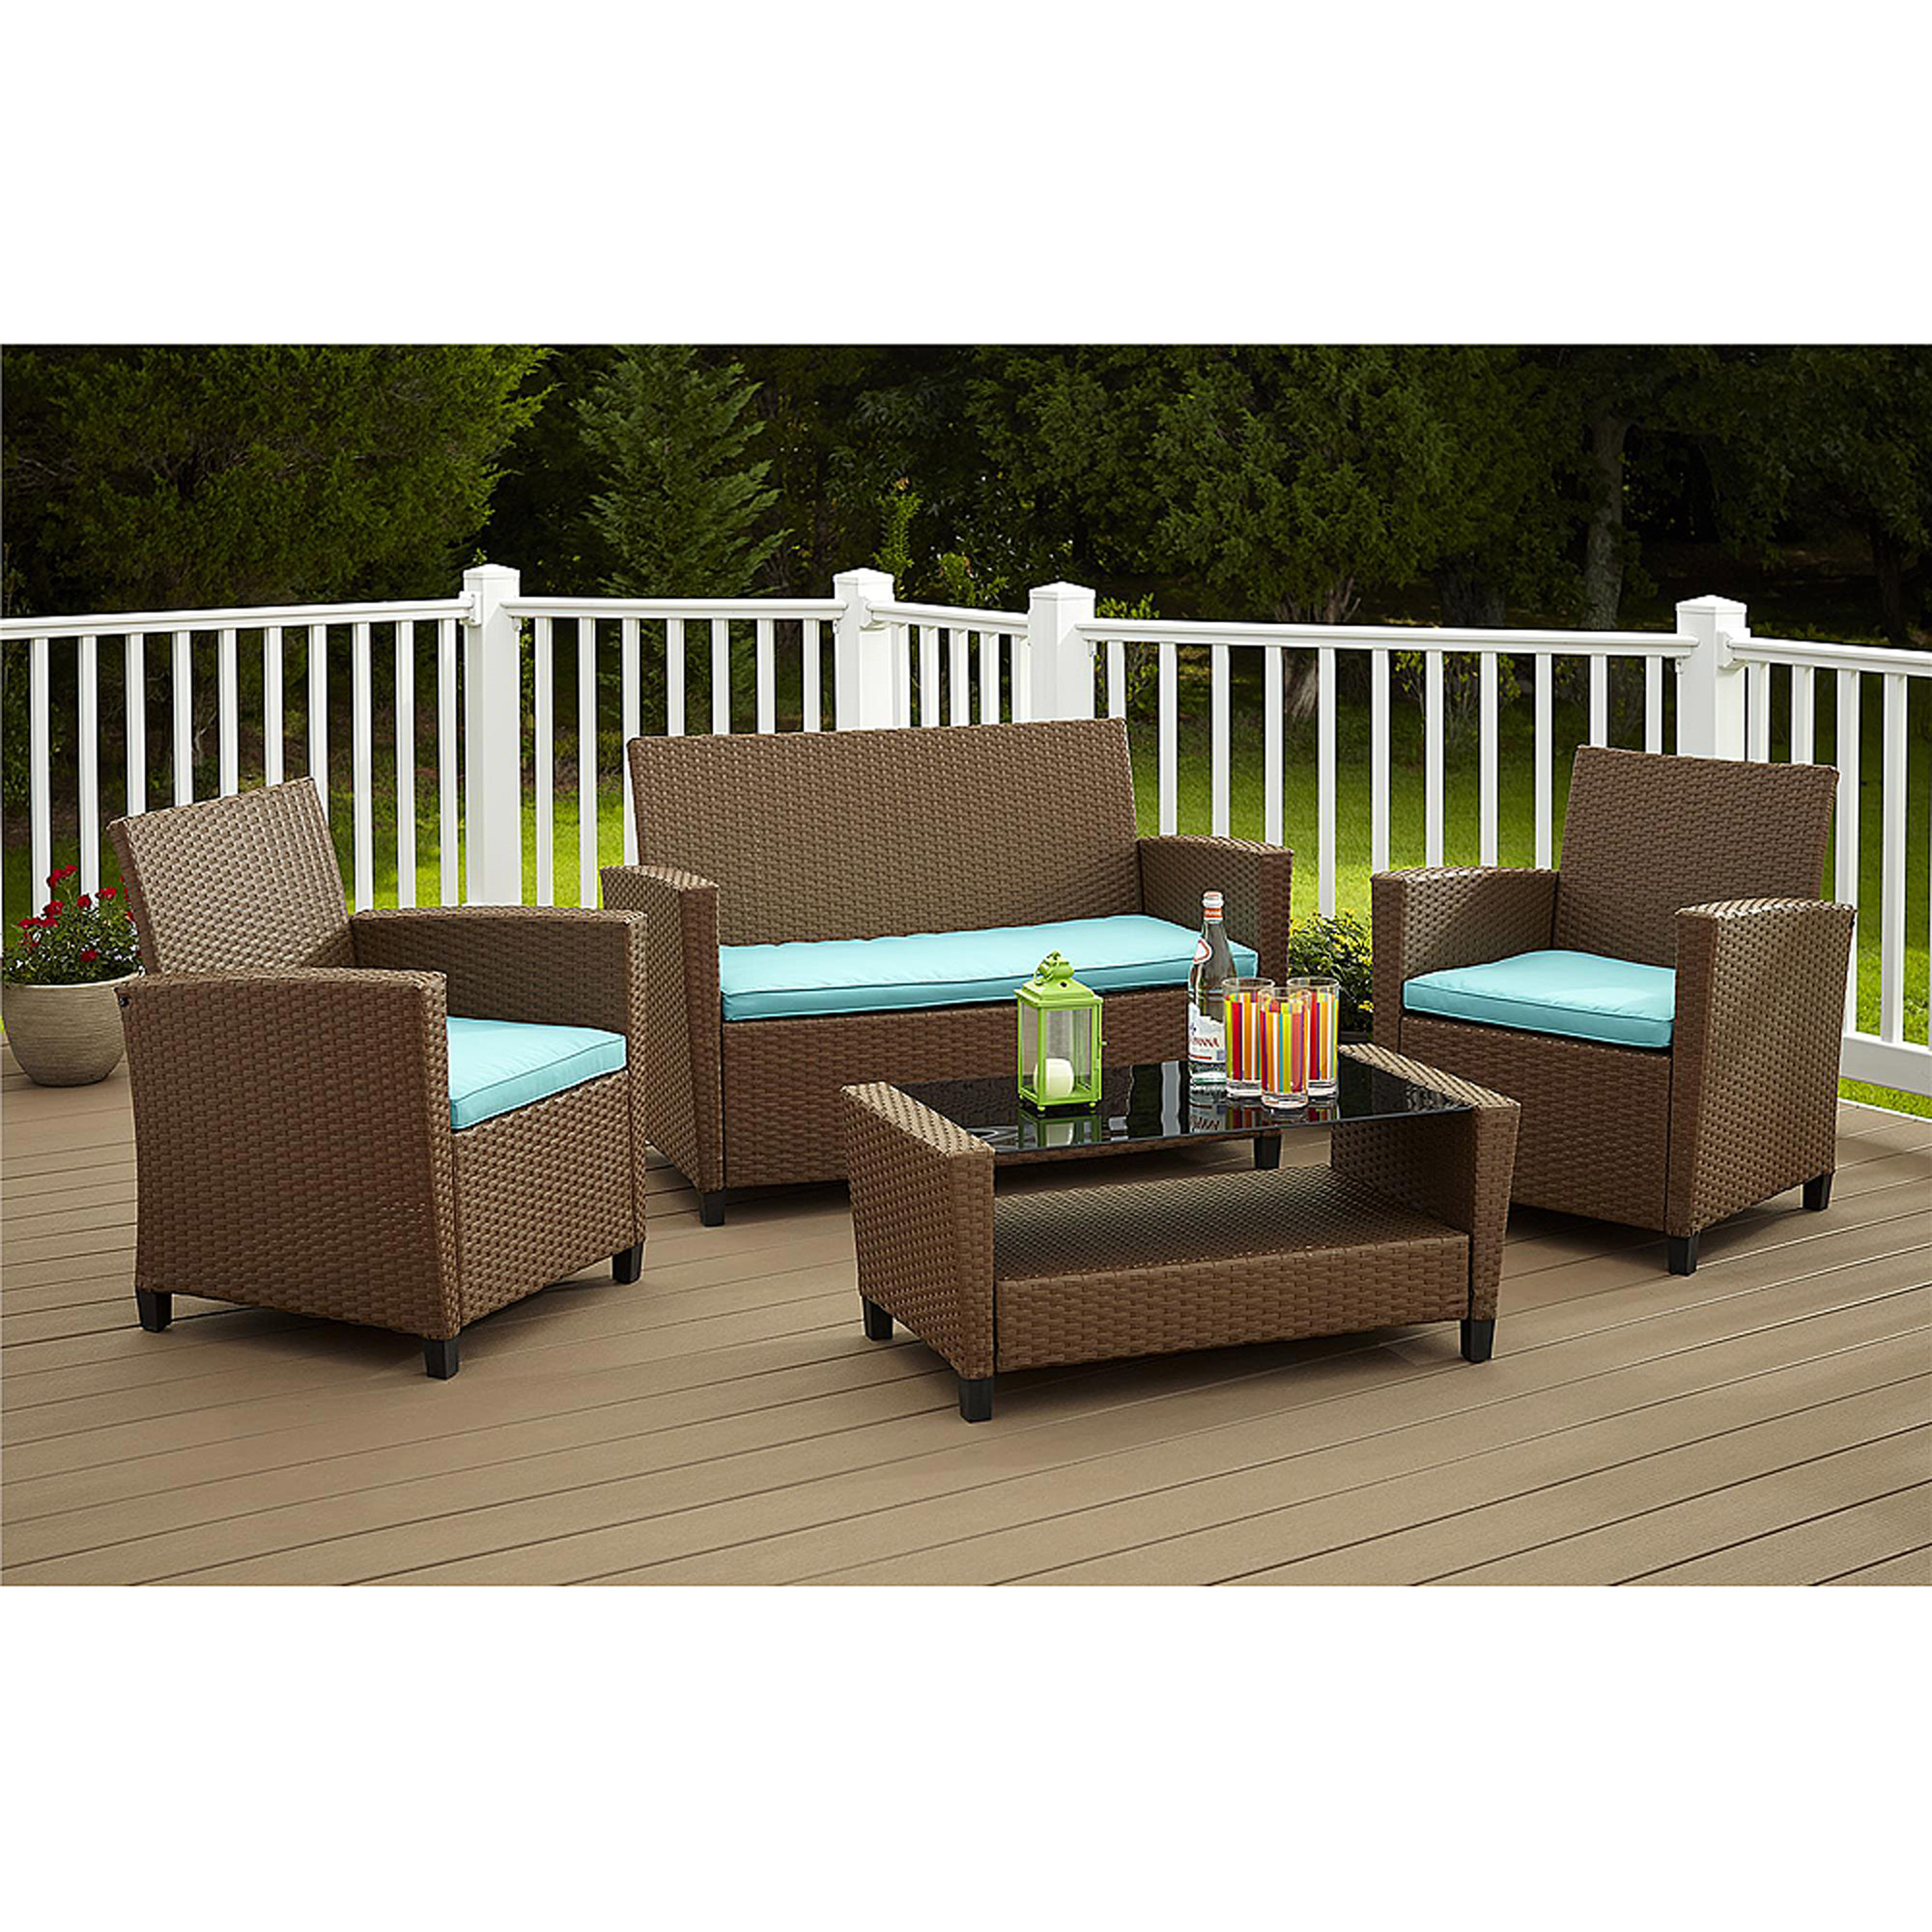 Cosco Outdoor Malmo 4-Piece Resin Wicker Patio Conversation Set, Brown